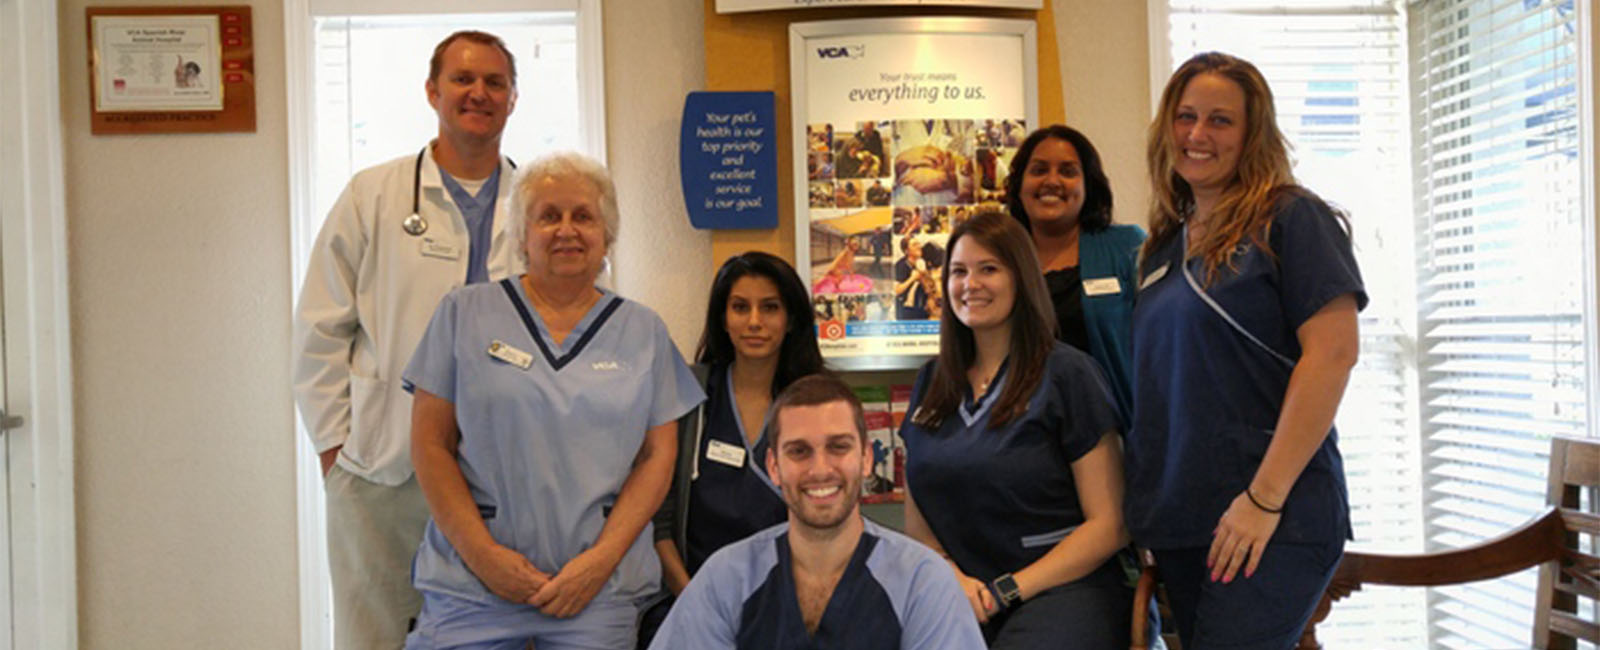 Homepage Team Picture of VCA Spanish River Animal Hospital